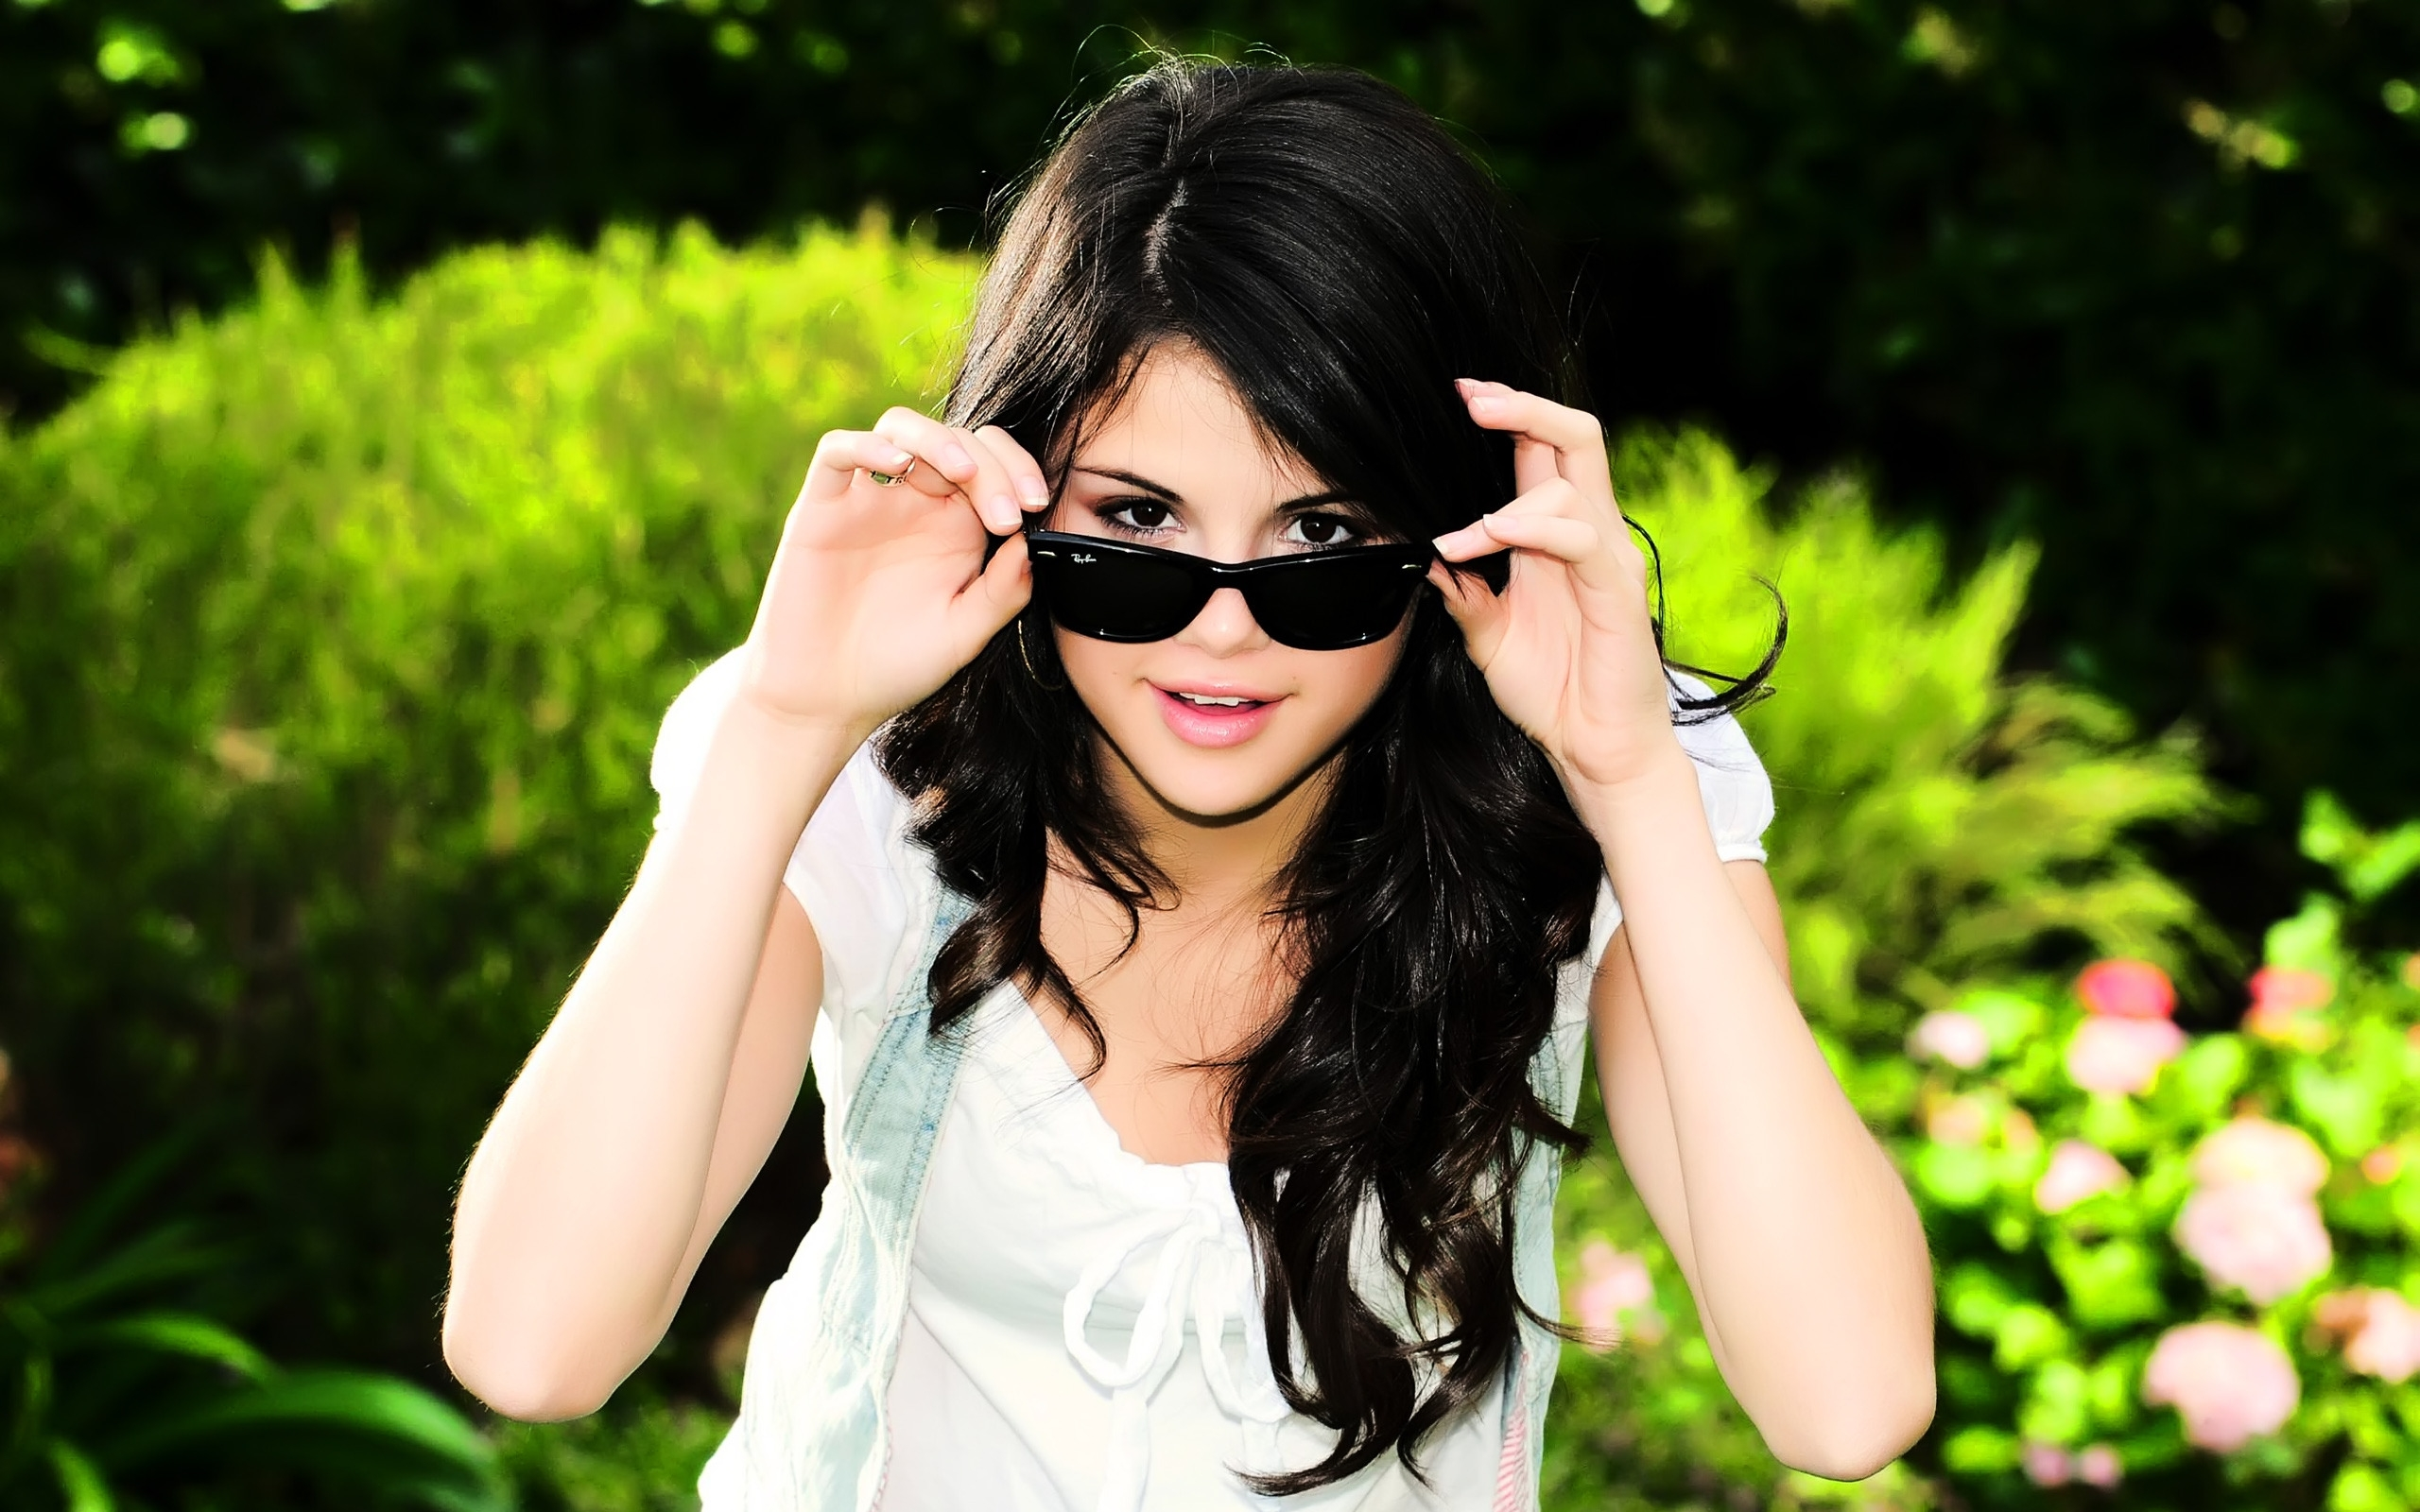 Cool Selena Gomez for 2560 x 1600 widescreen resolution